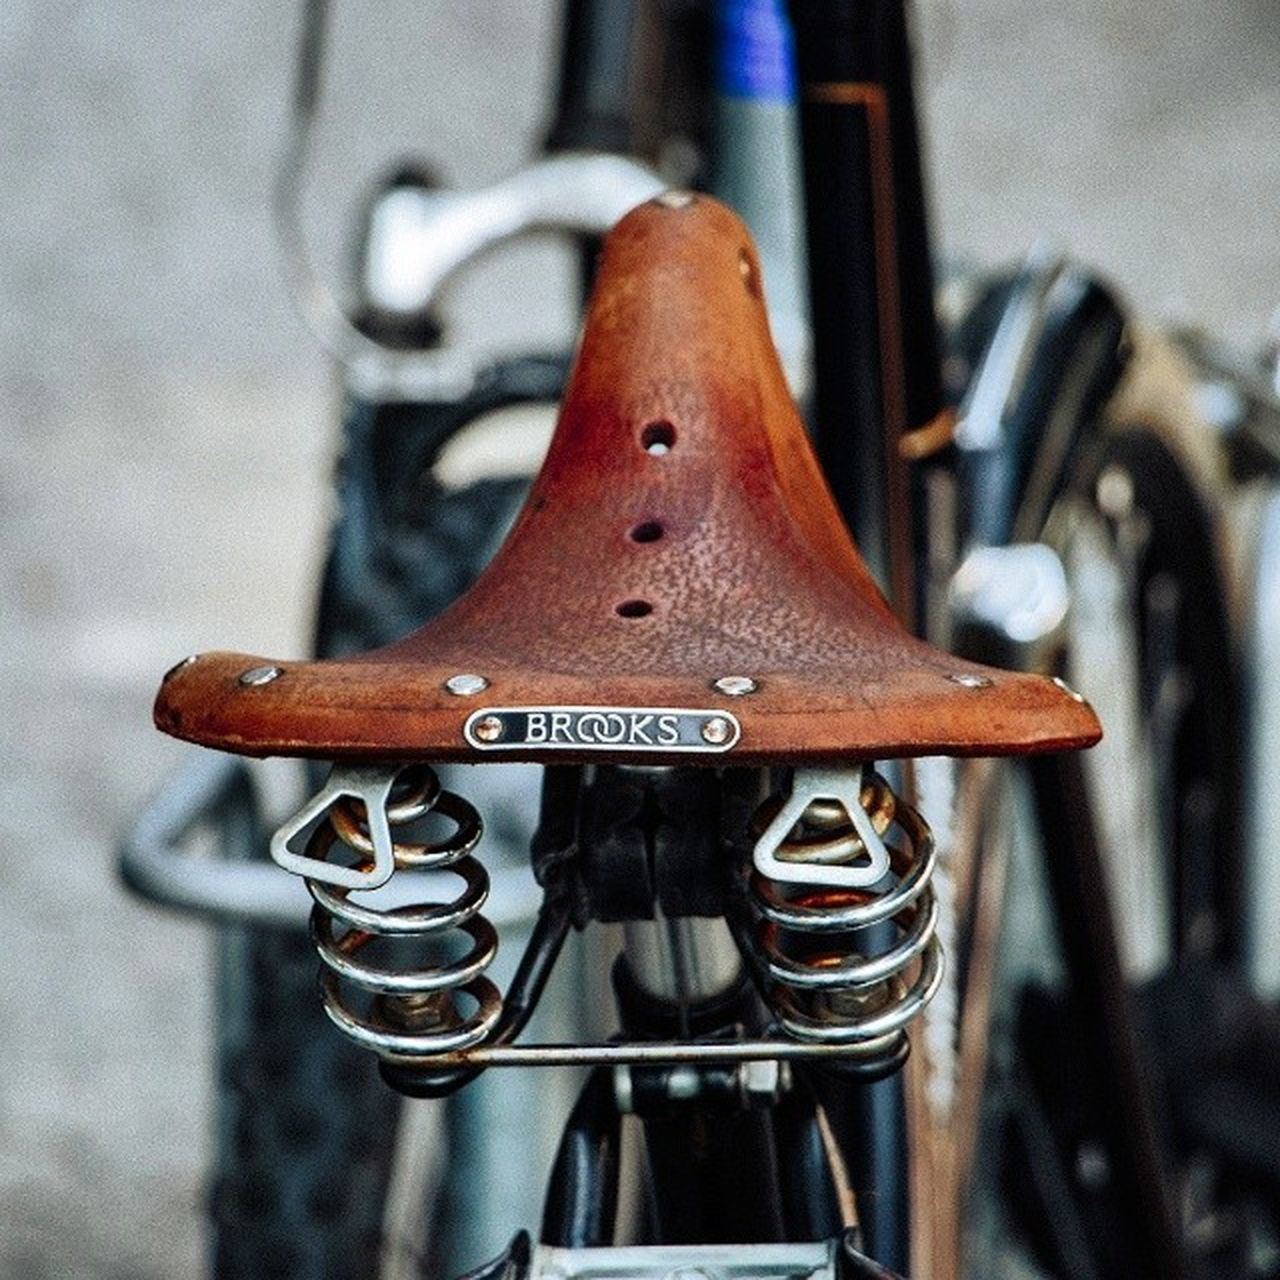 metal, close-up, focus on foreground, no people, day, transportation, outdoors, bicycle, mode of transport, rusty